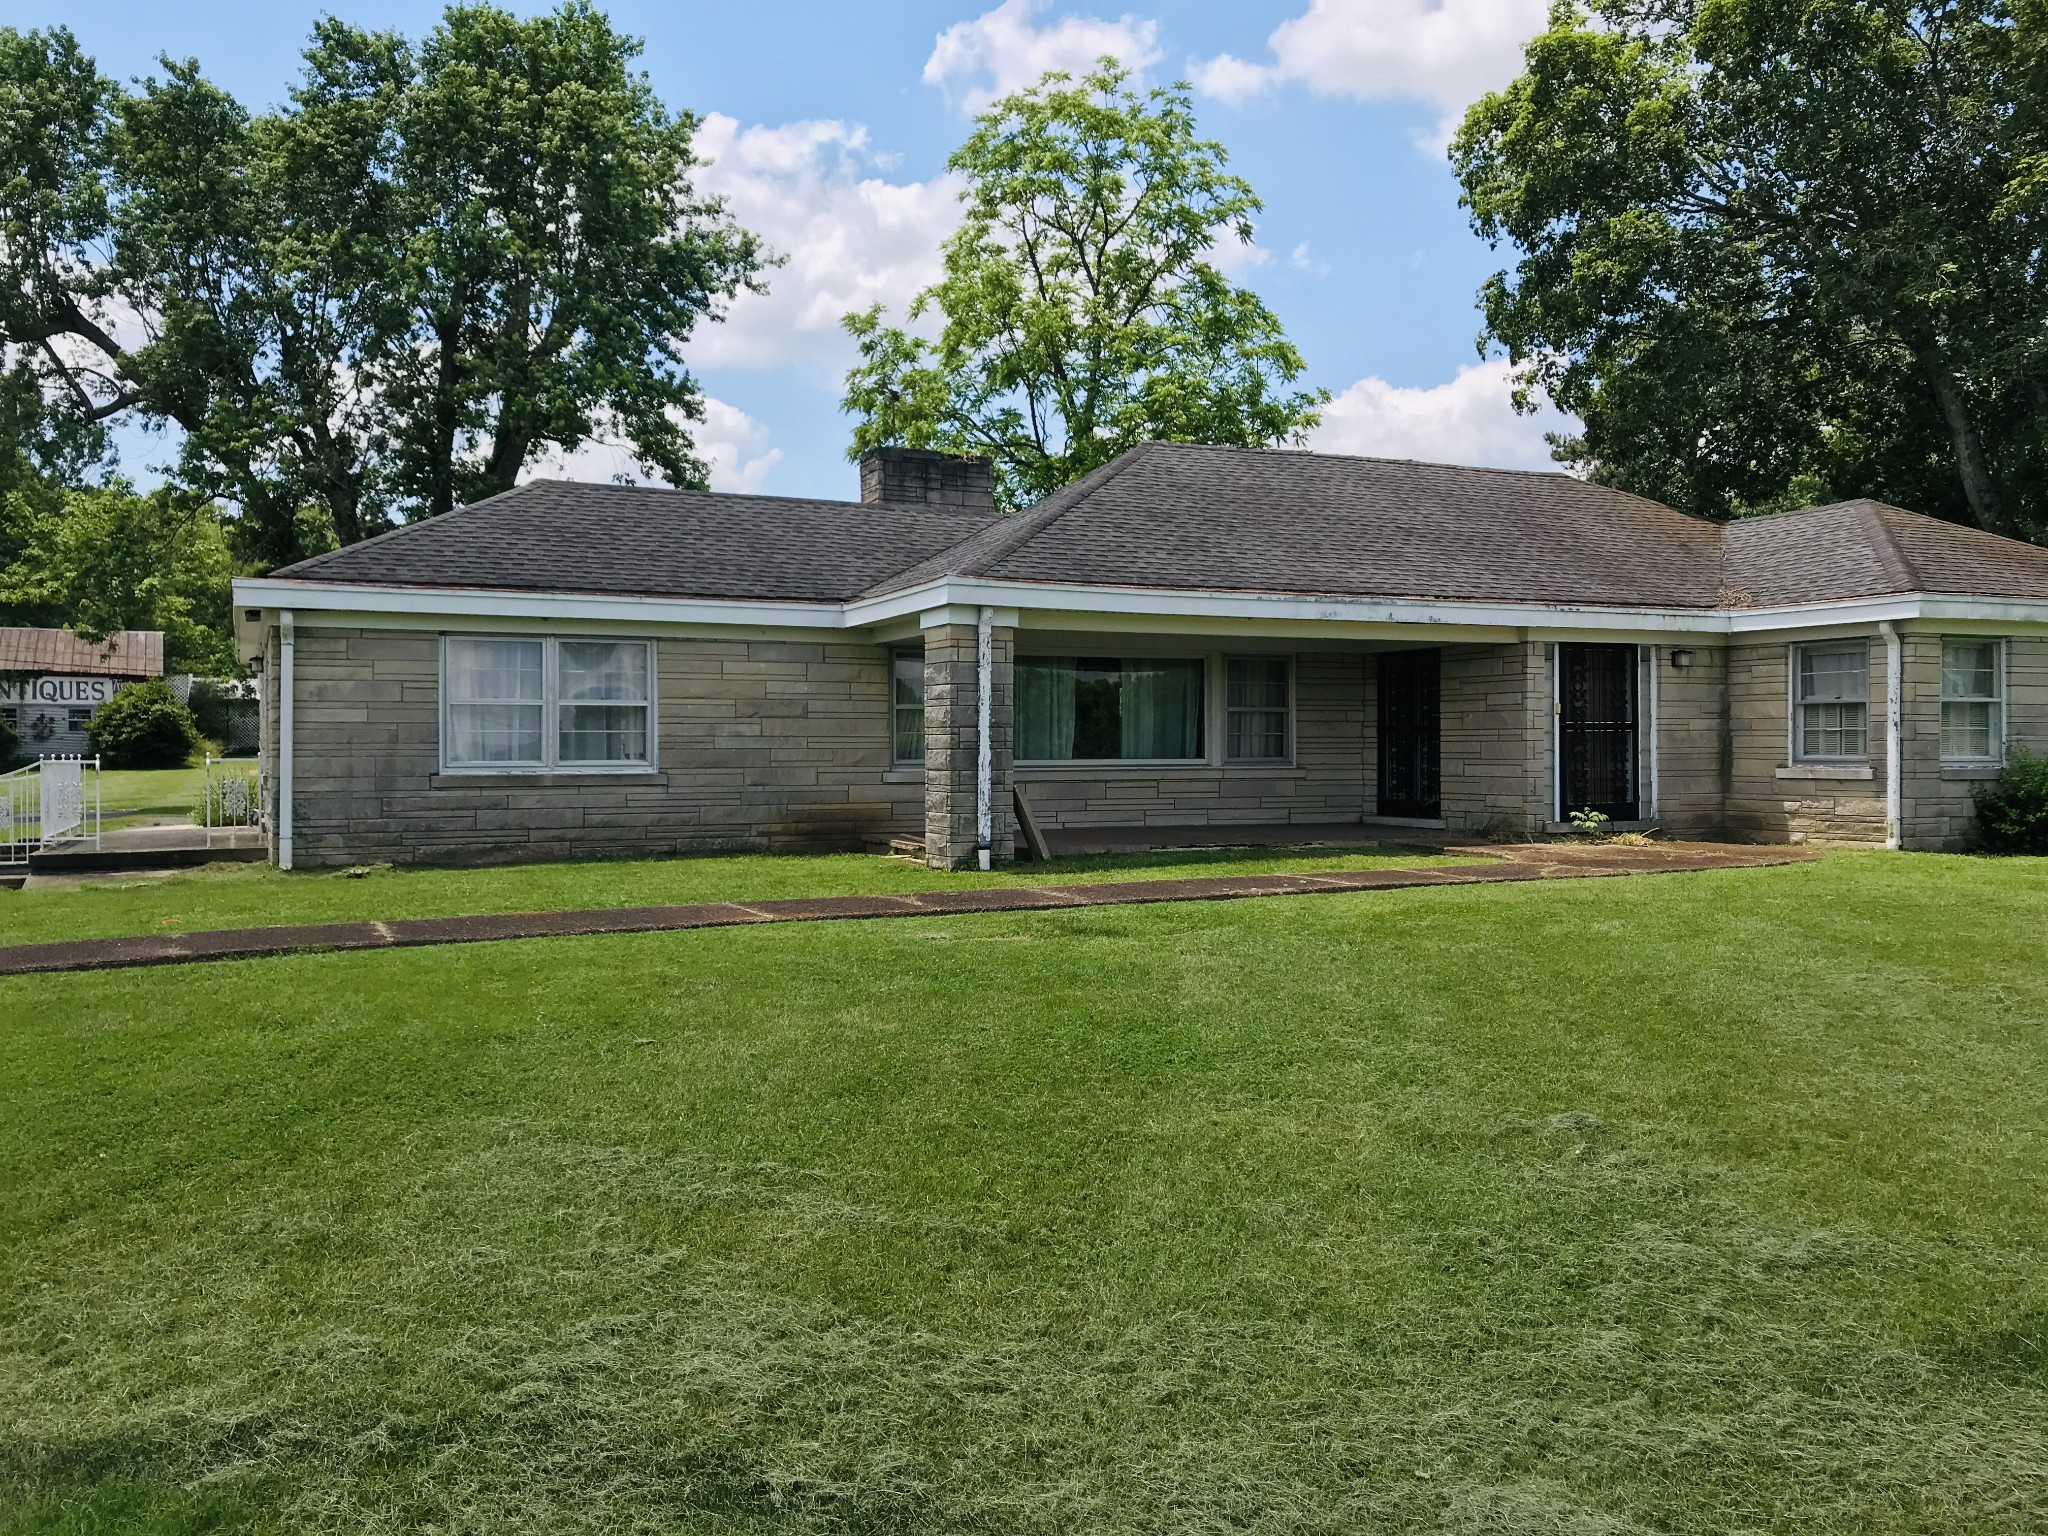 1 Bellenfant Rd Property Photo - College Grove, TN real estate listing